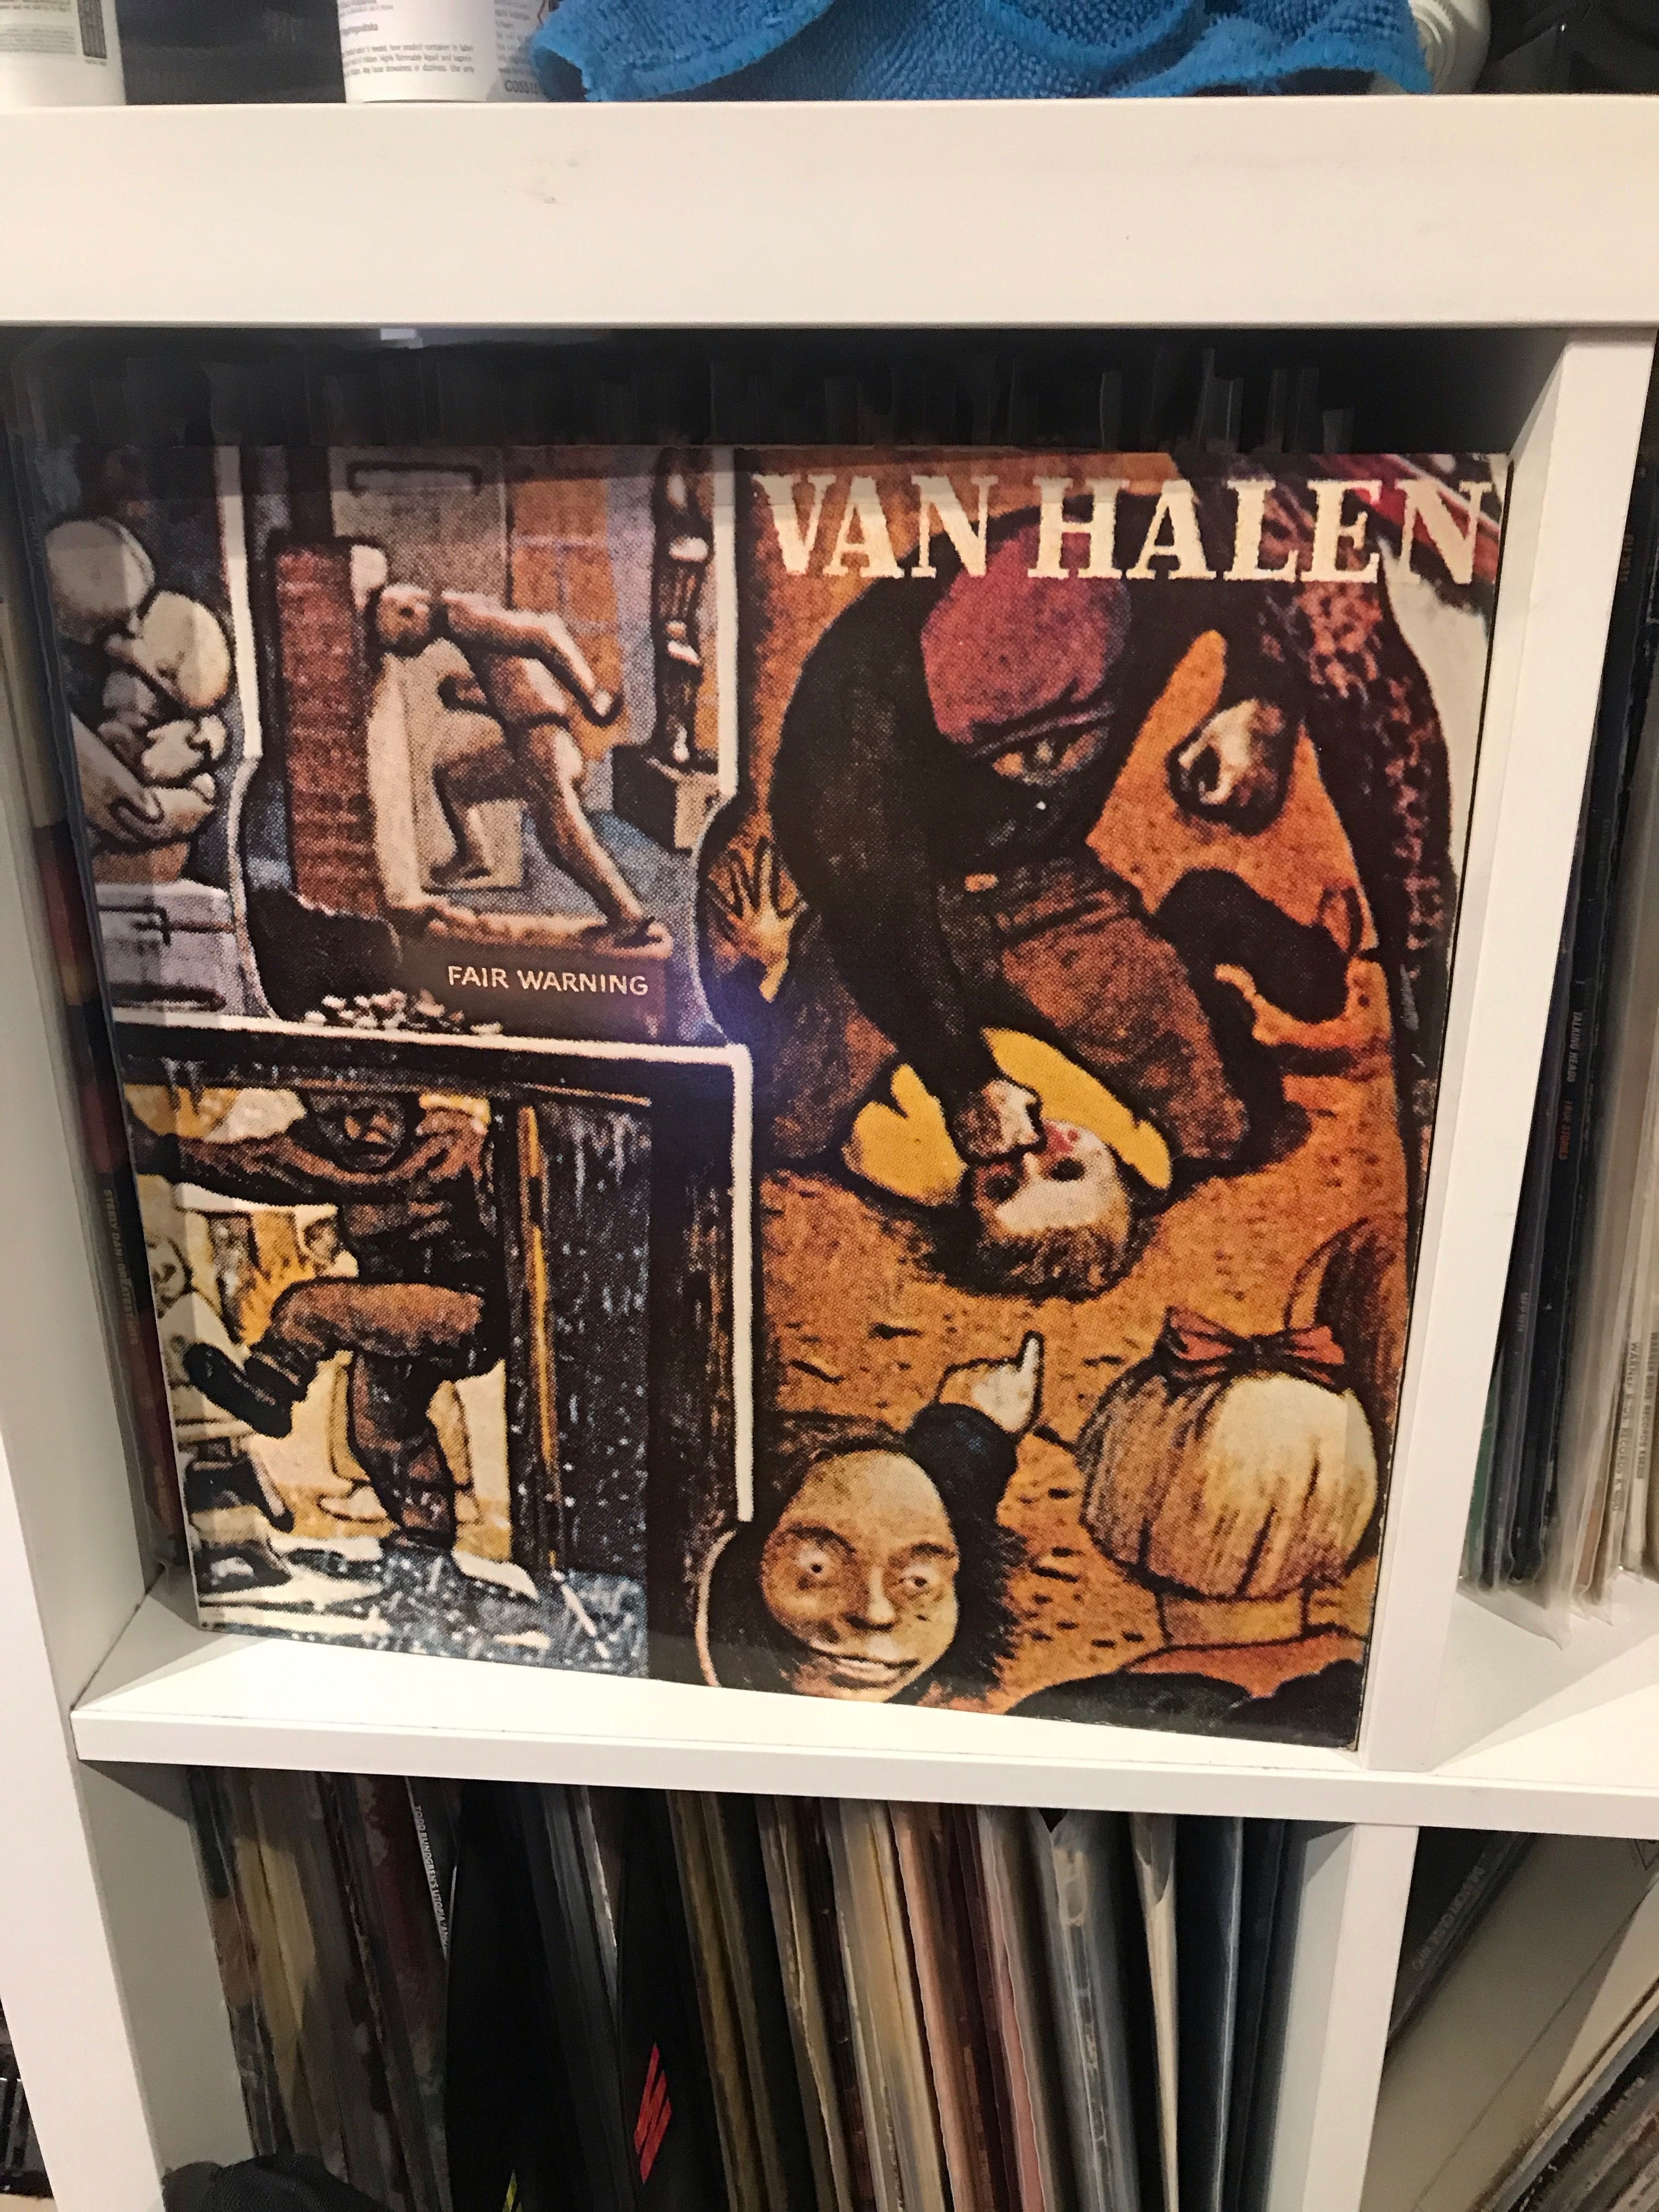 Pin By Steve Whitty On My Record Collection Van Halen Fair Warning Van Halen Record Collection